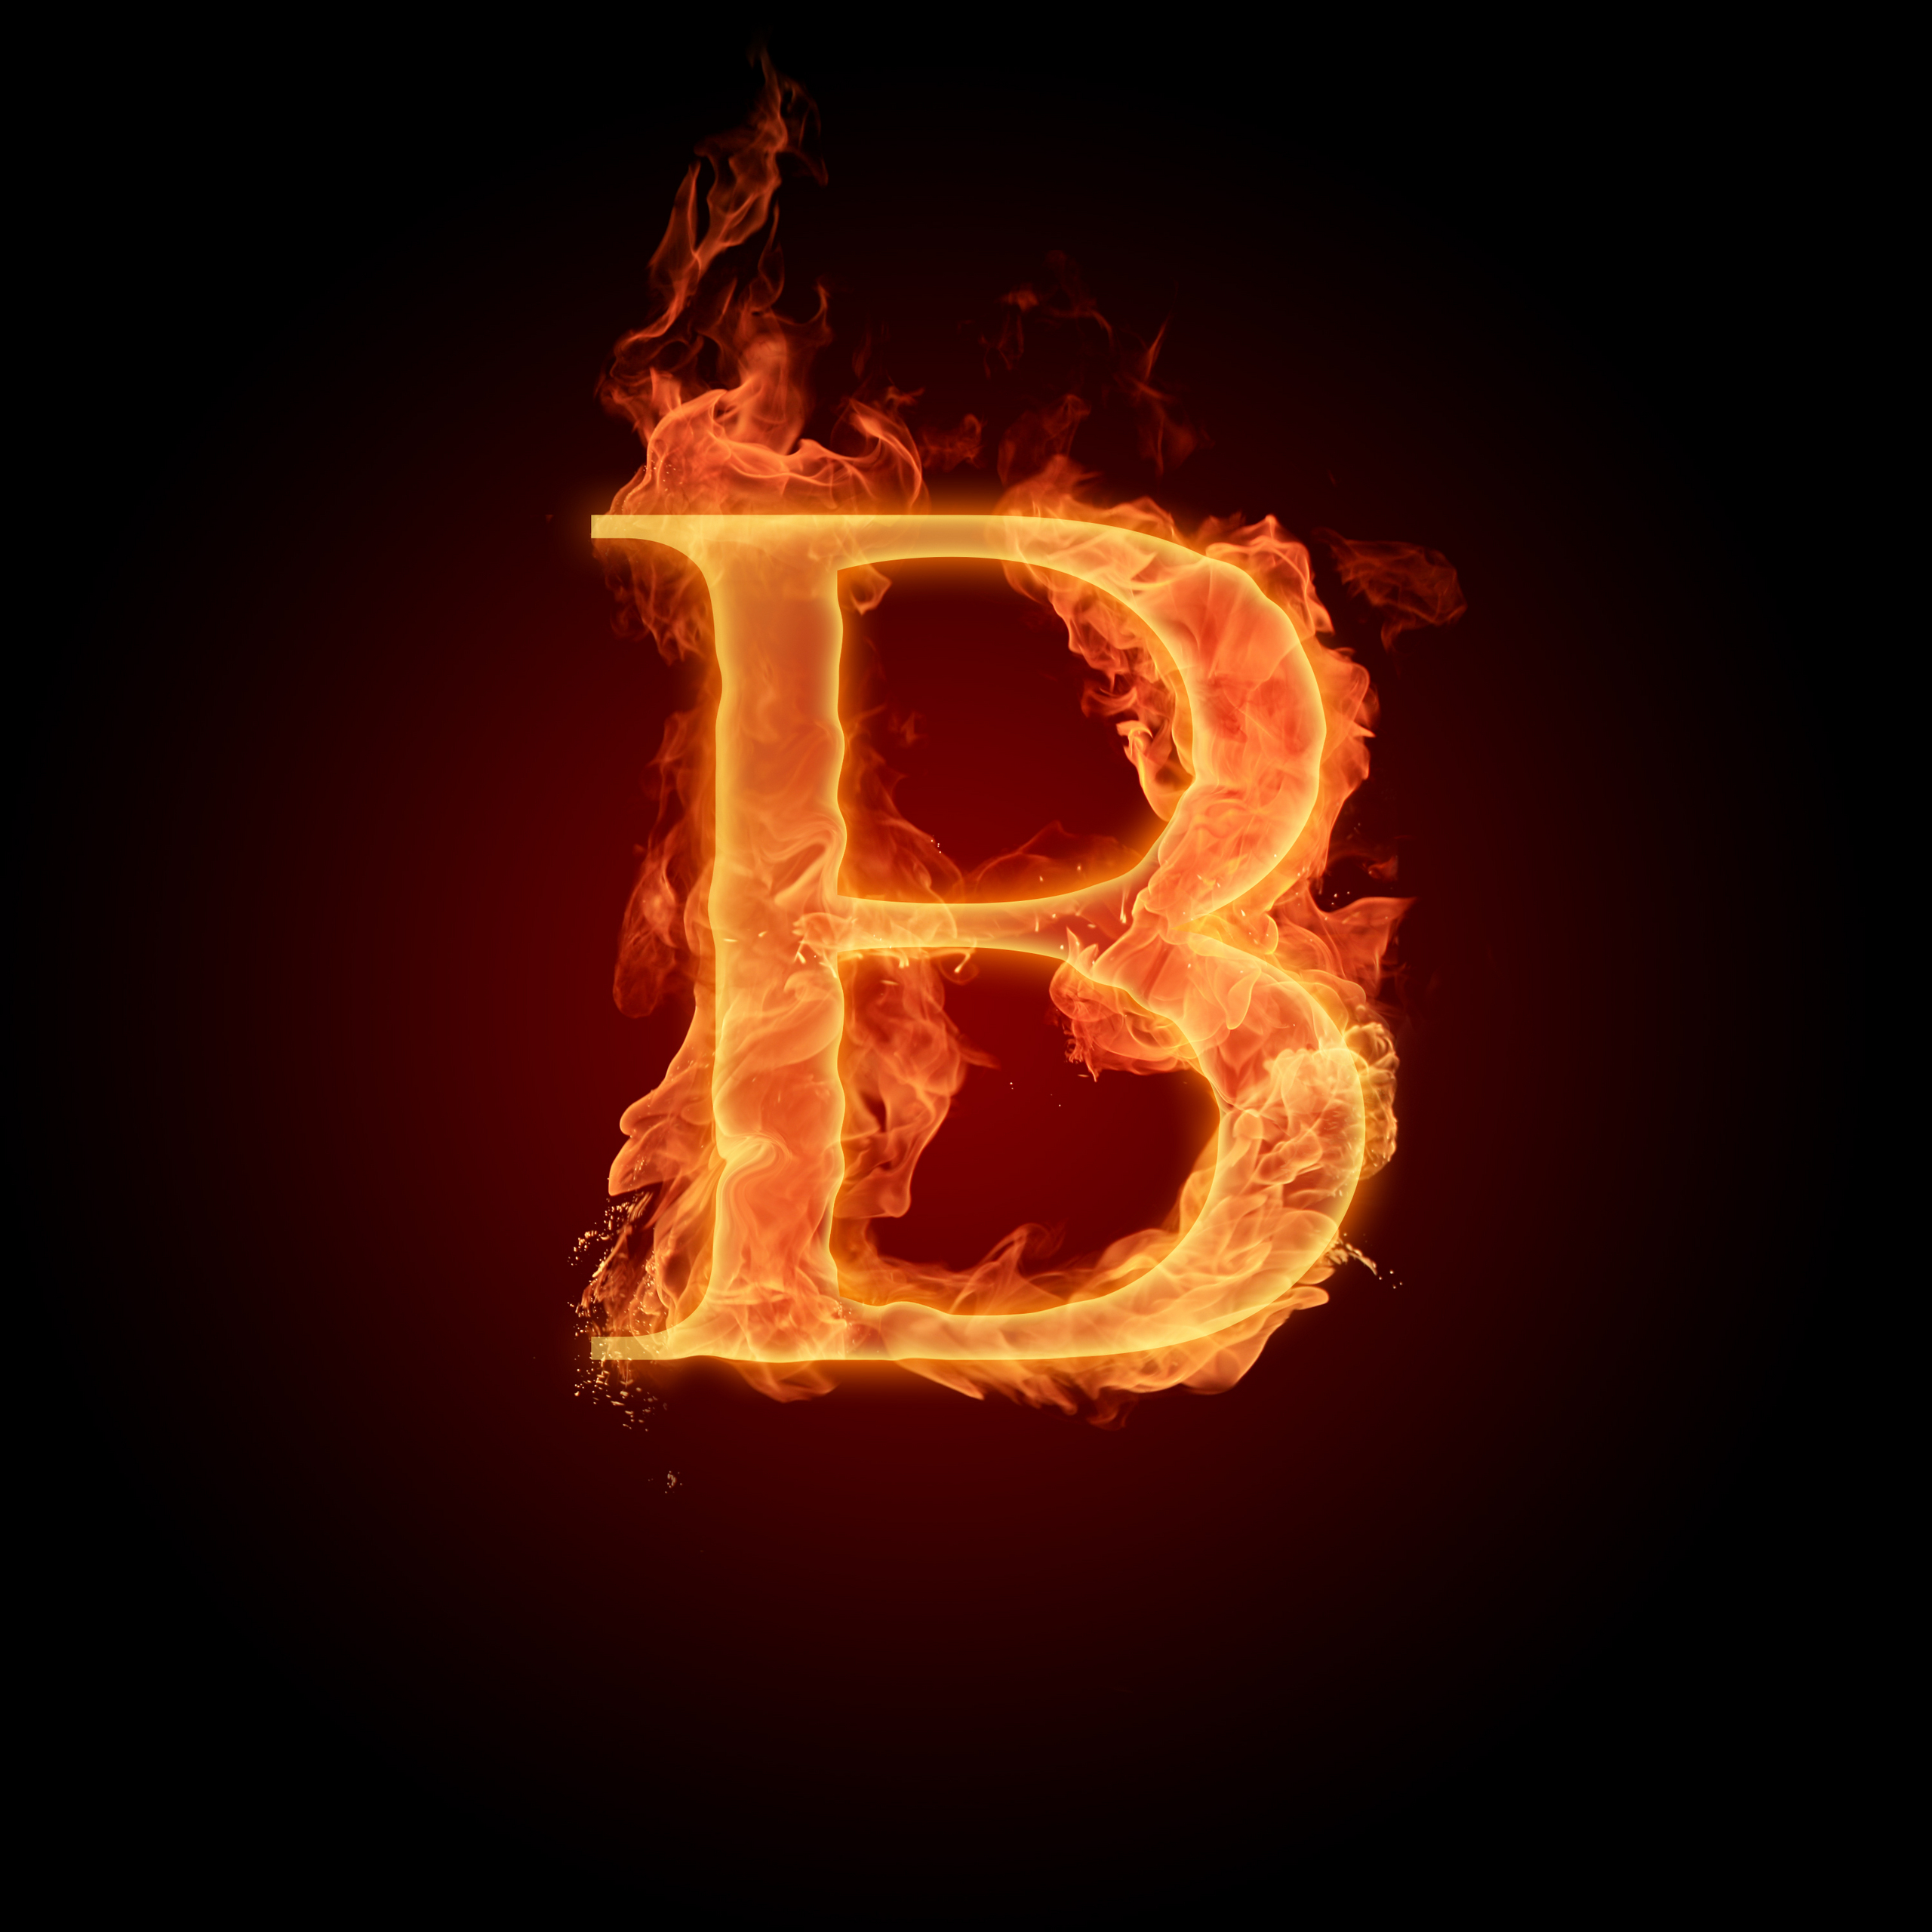 The Letter B Images The Letter B Hd Wallpaper And Background Photos